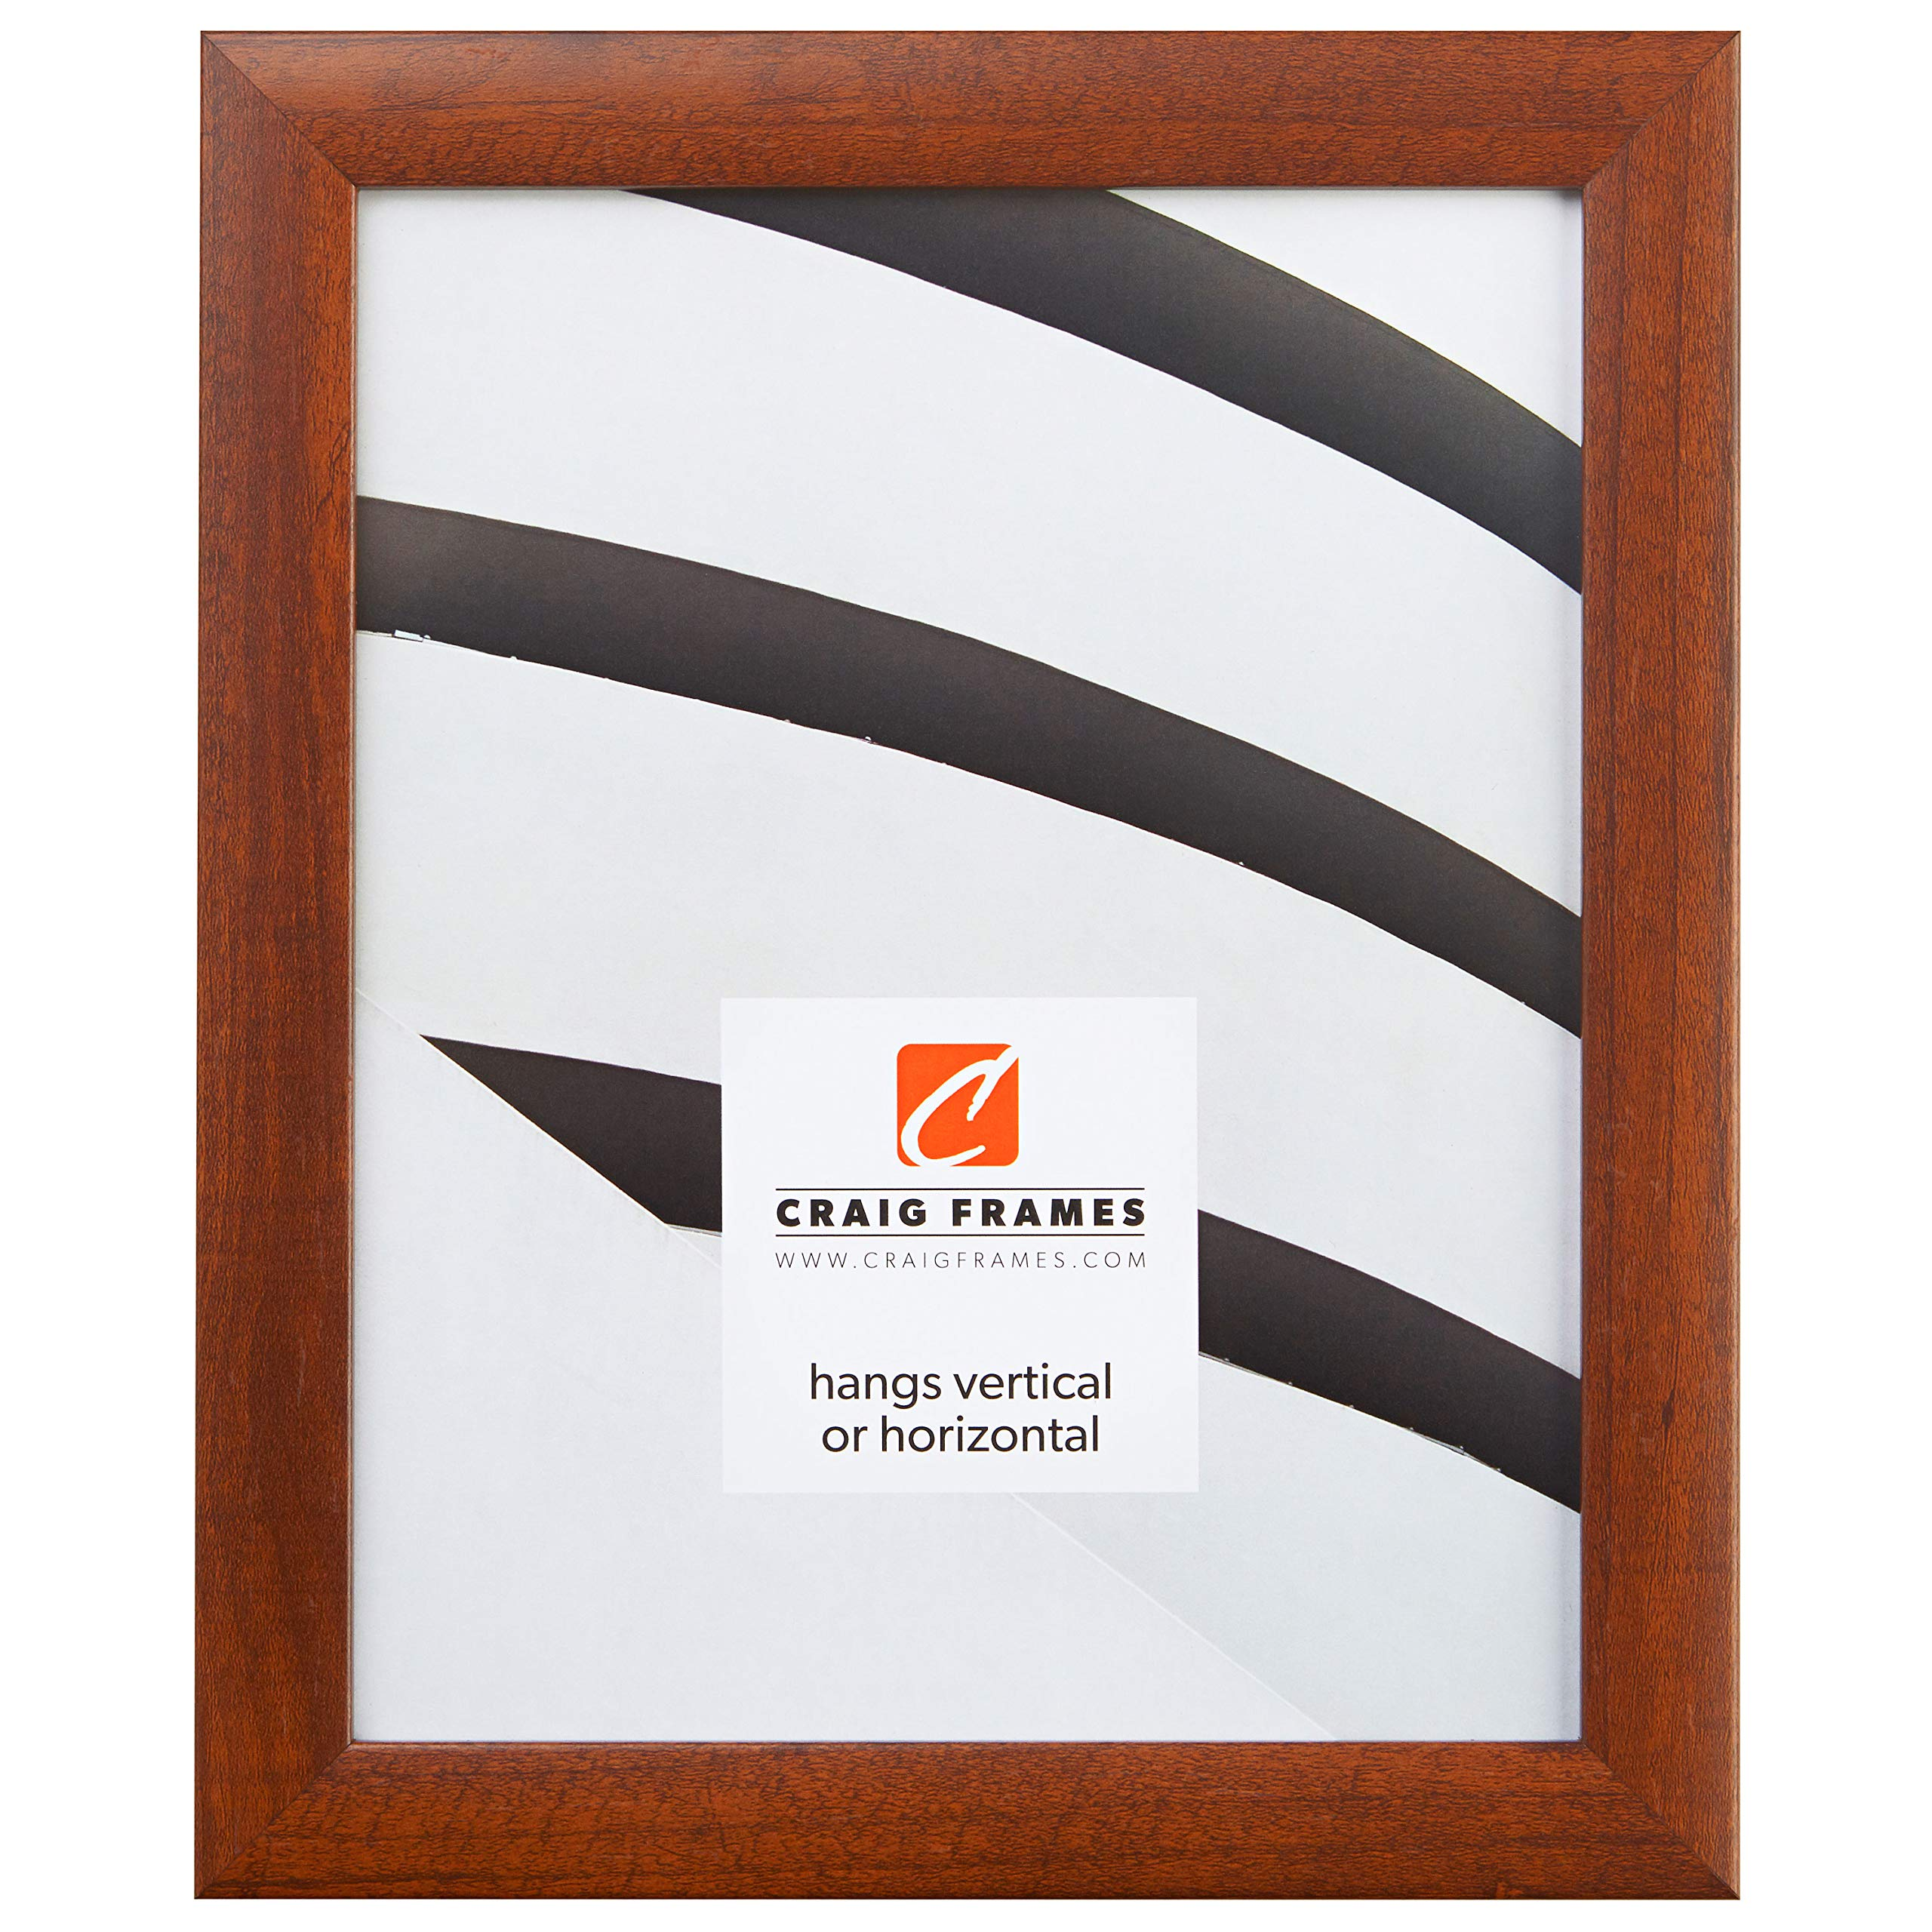 Craig Frames 23247616 18 by 24-Inch Picture Frame, Smooth Wood Grain Finish, 1-Inch Wide, Walnut Brown